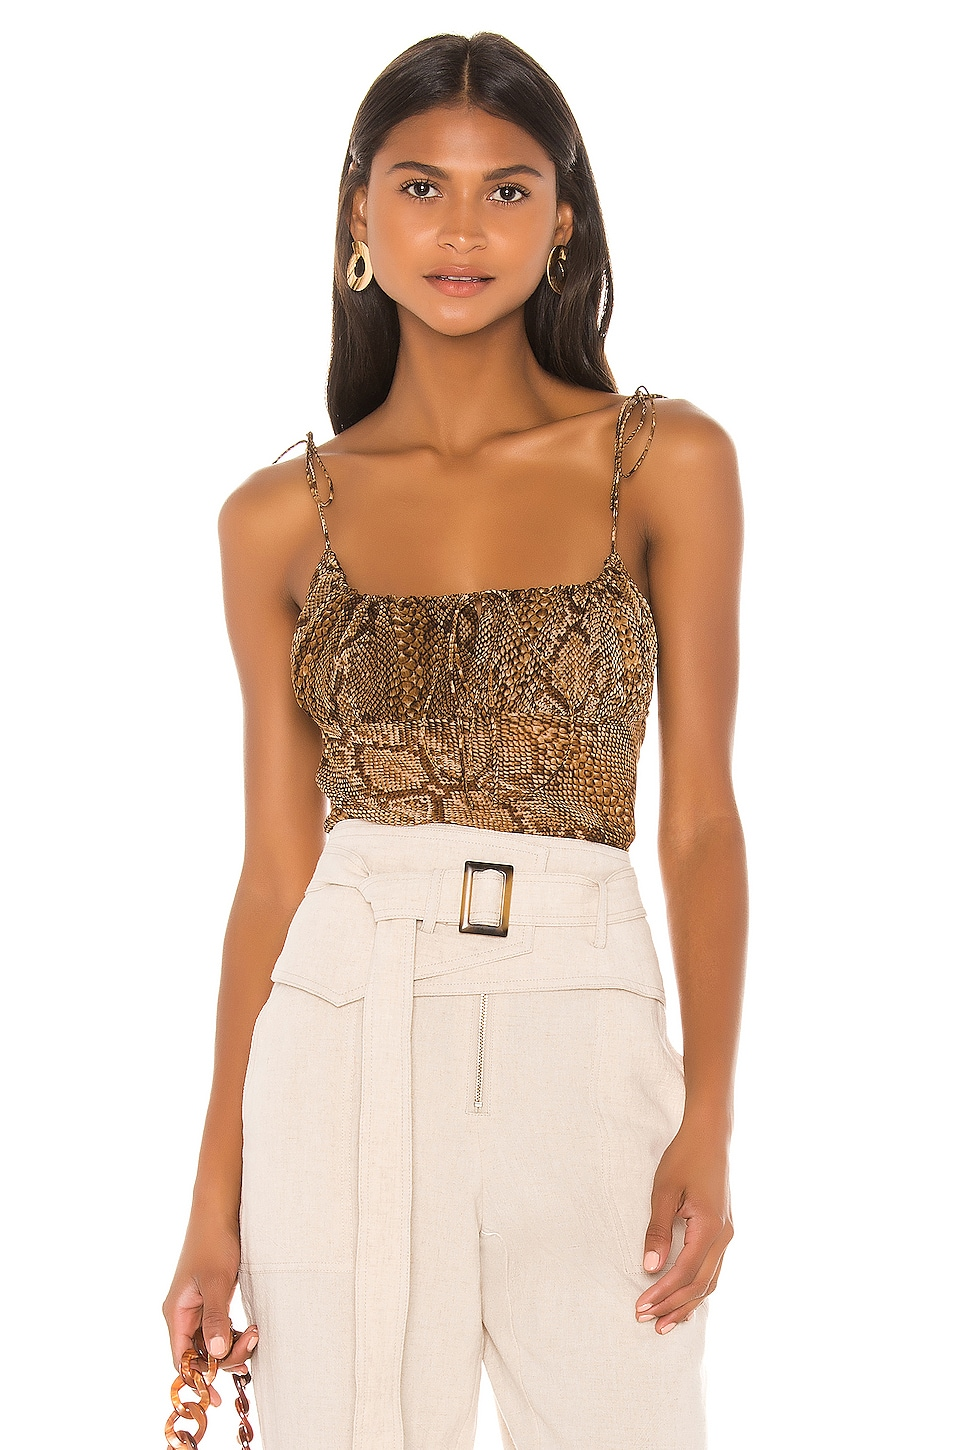 L'Academie The Aylah Top in Snake